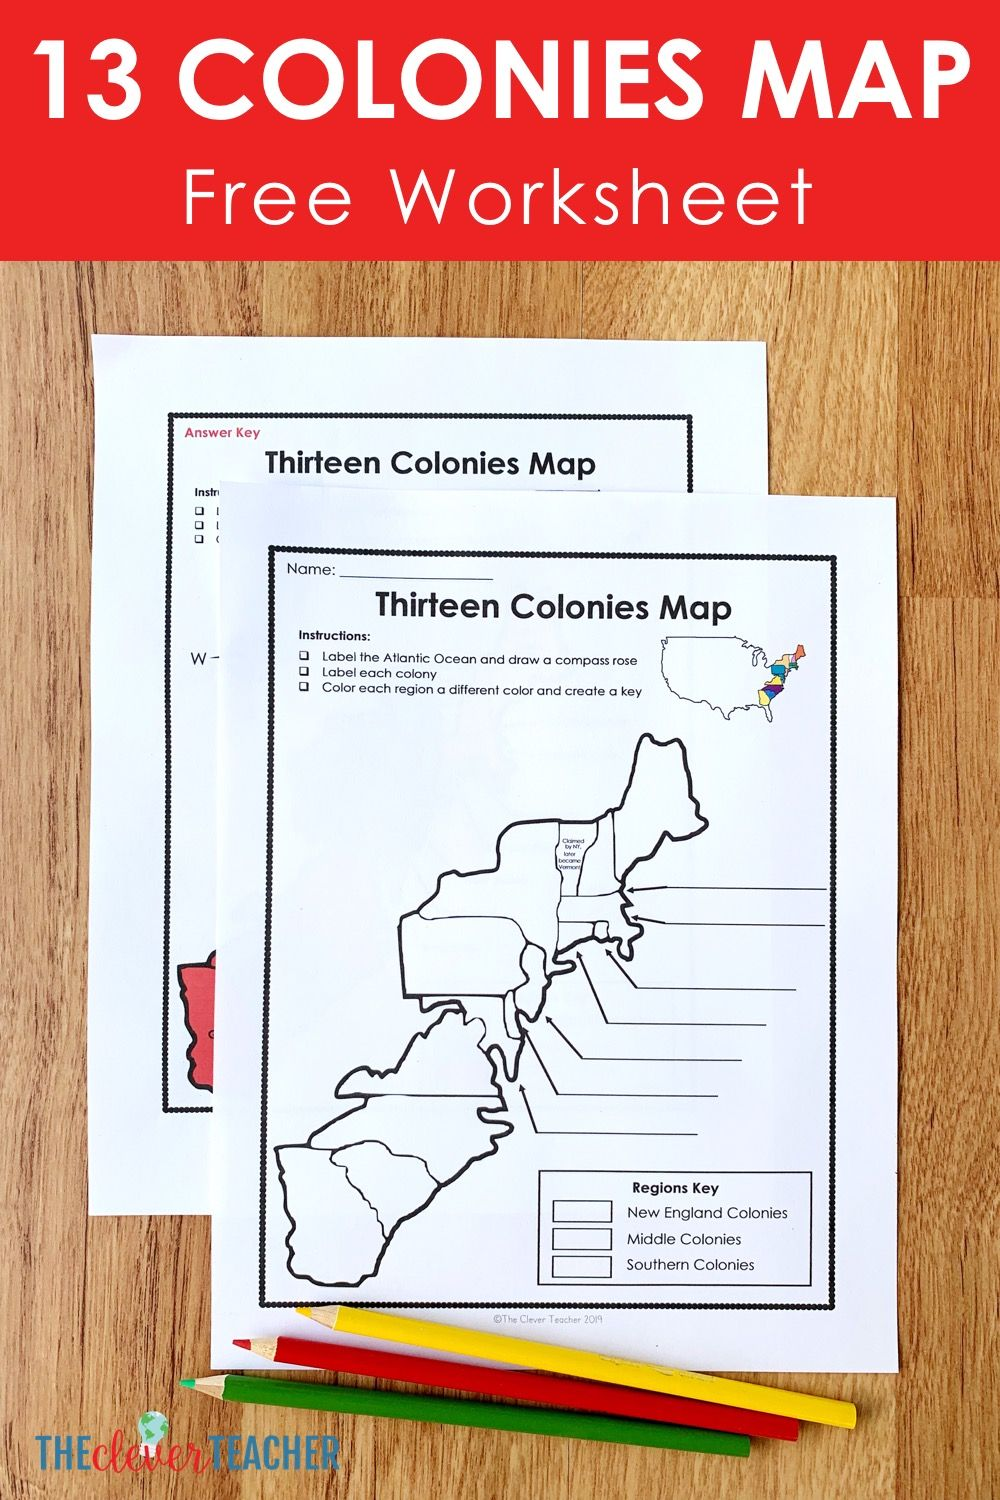 13 Colonies Free Map Worksheet And Lesson For Students 13 Colonies Activities 13 Colonies Map Teaching History